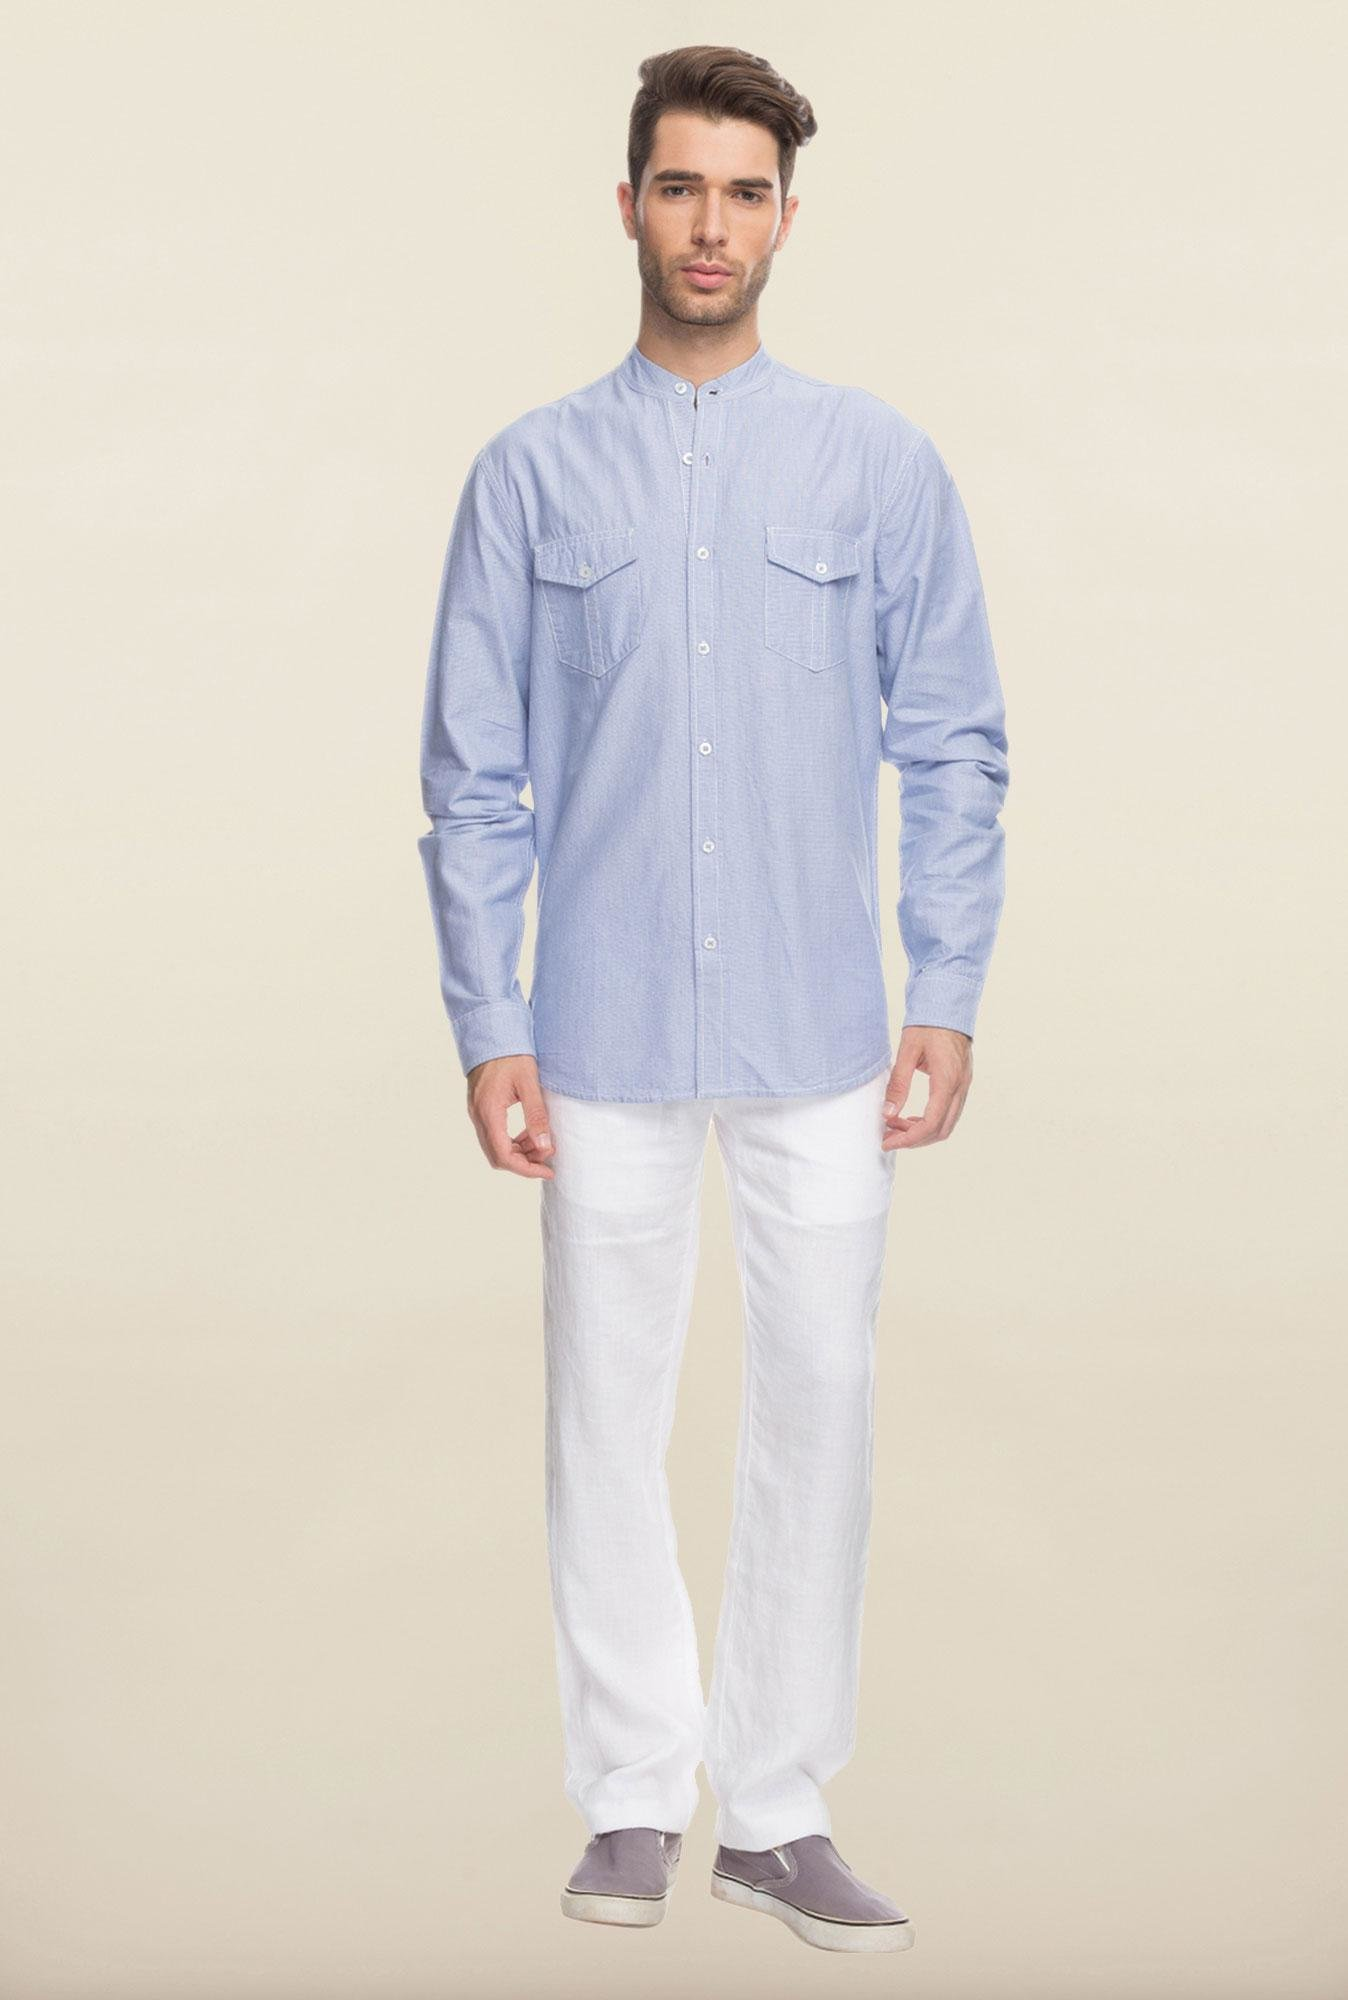 Cottonworld Sky Blue Solid Cotton Casual Shirt